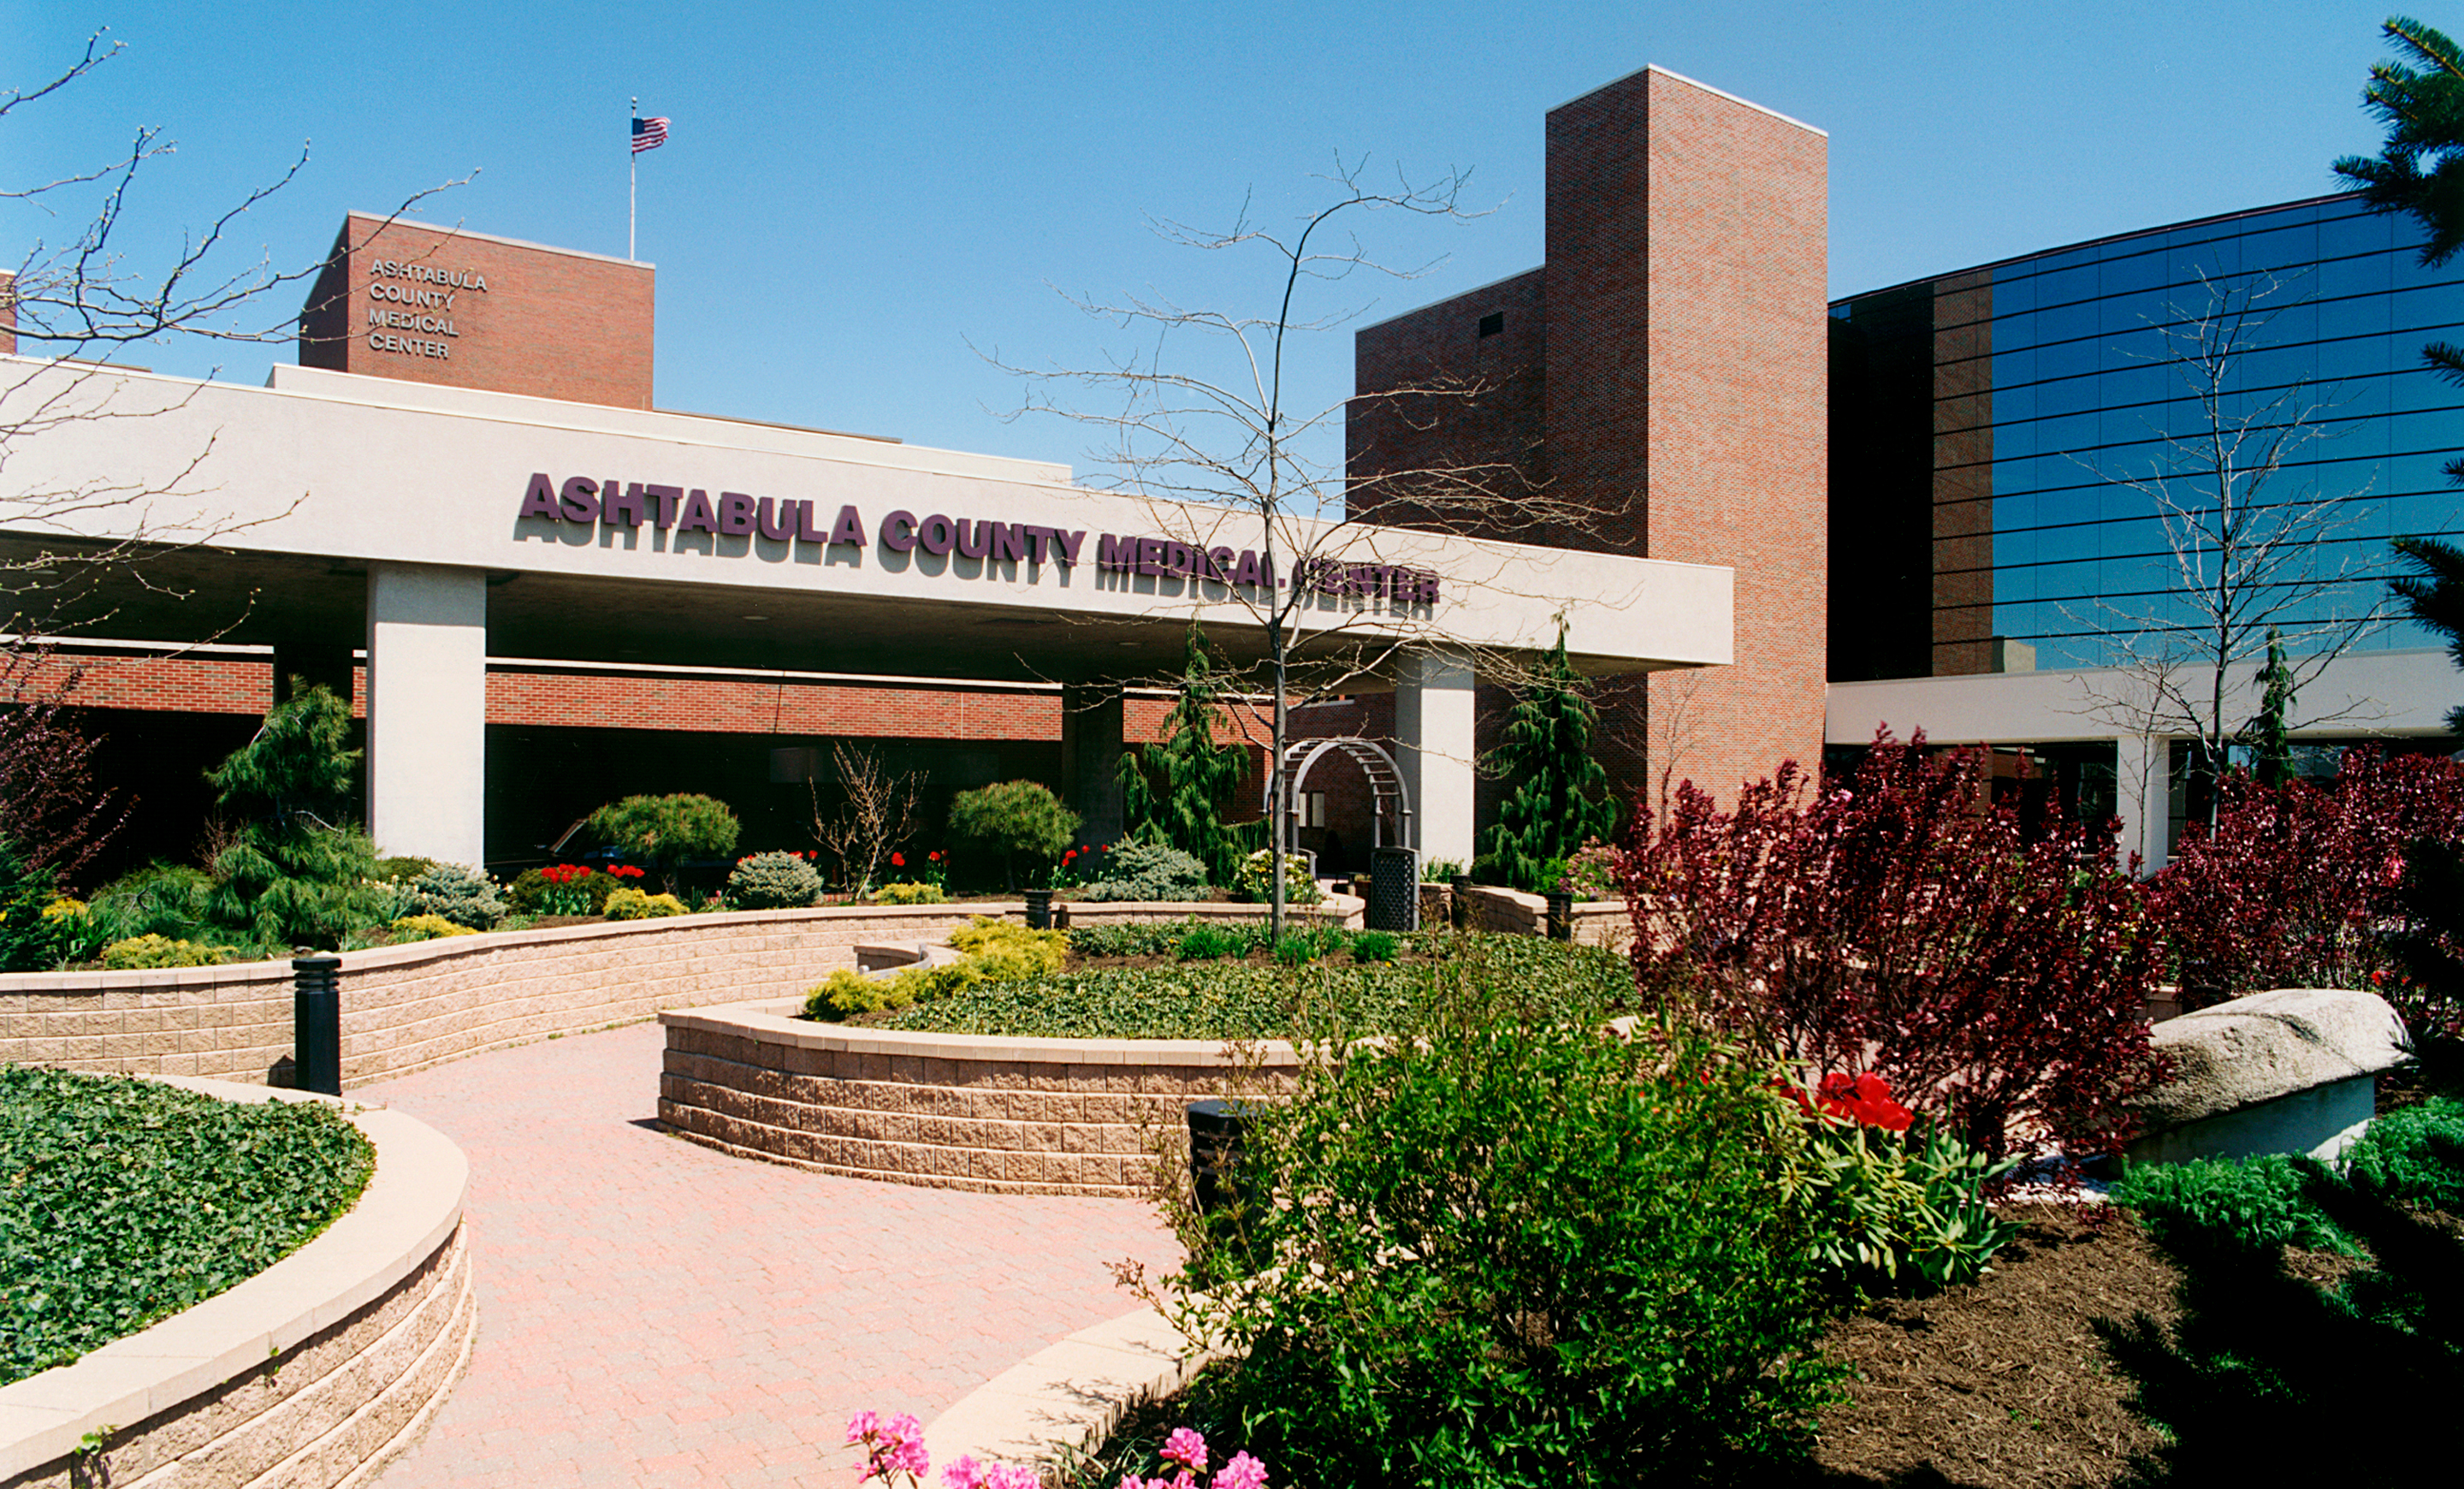 Ashtabula County Medical Center